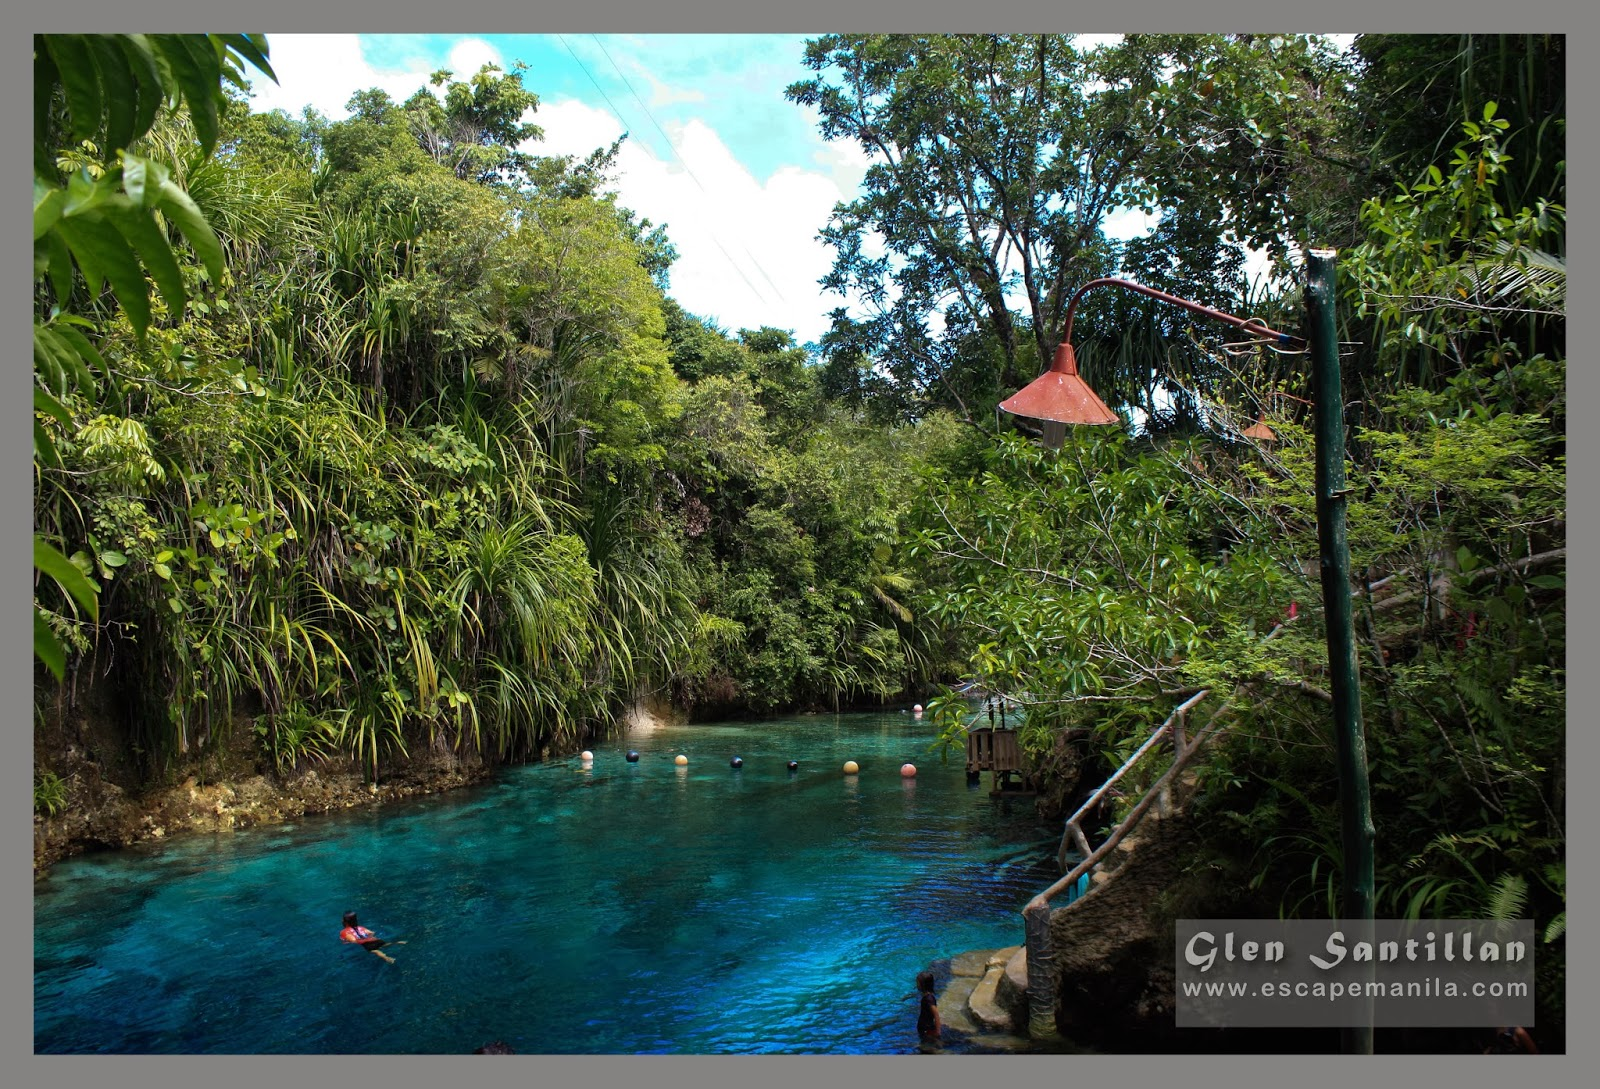 tourist spots in surigao de sur: Hinatuan Enchanted River